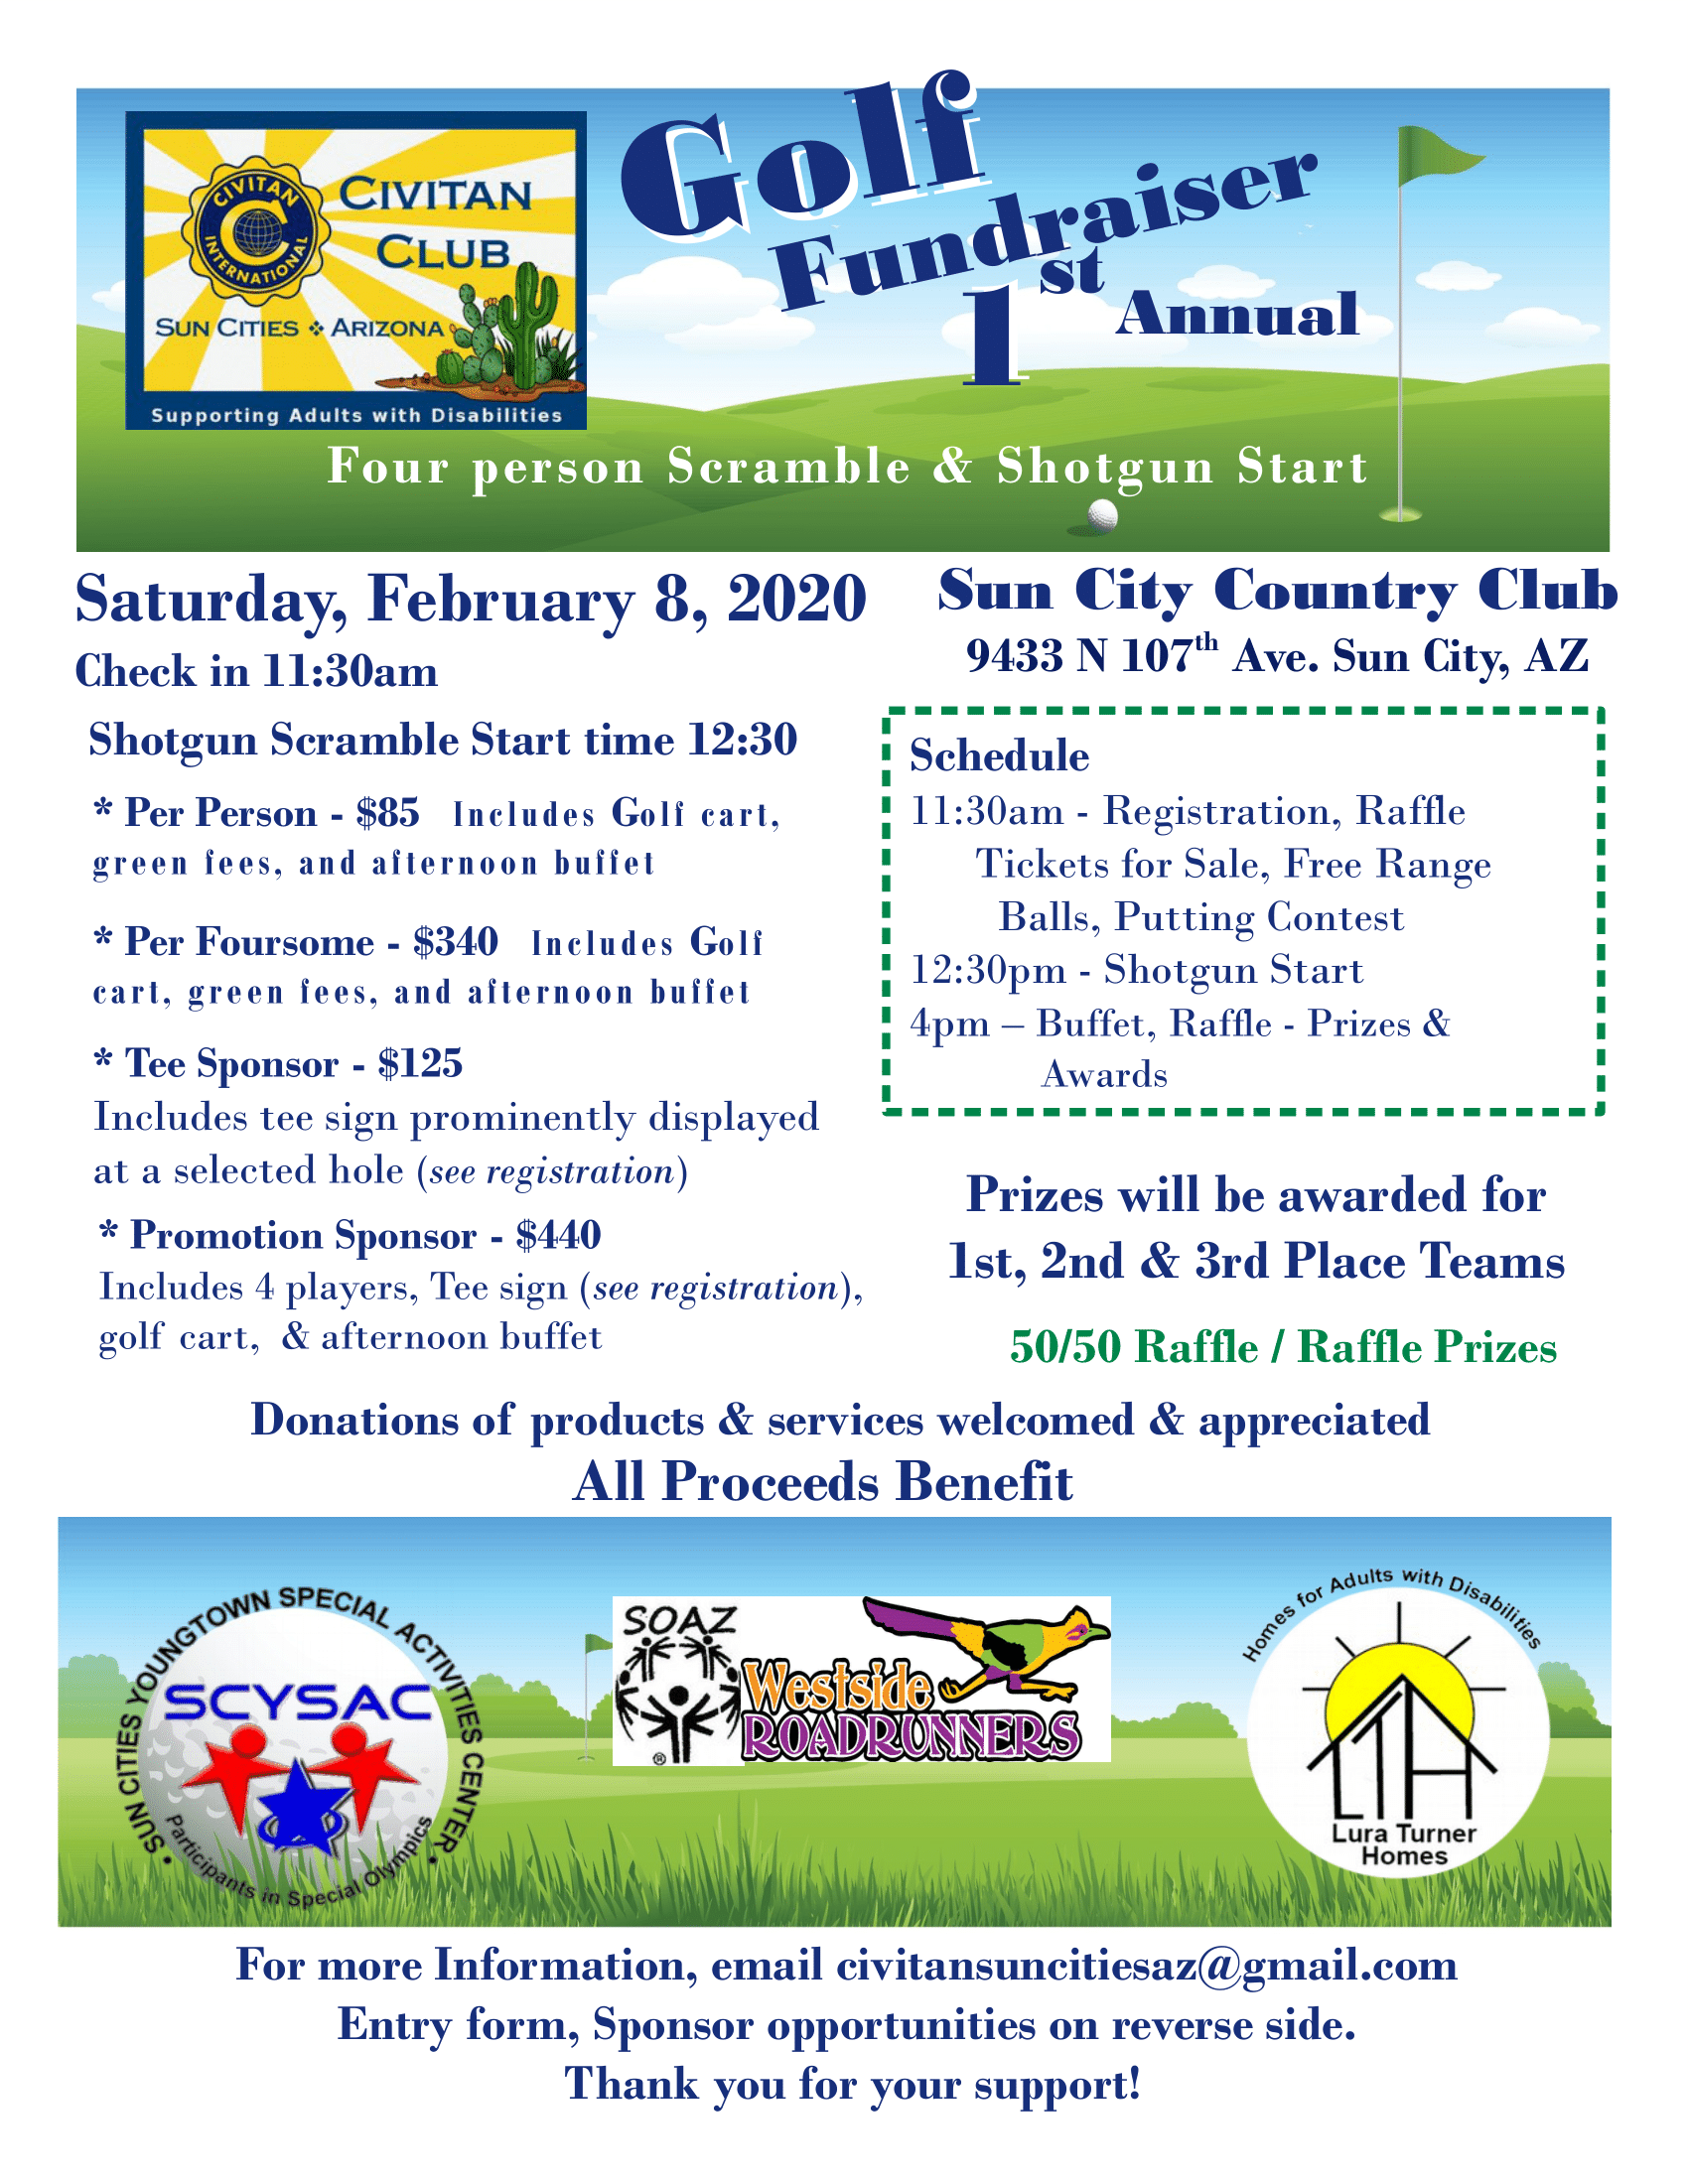 Civitan Club of Sun Cities 1st Annual Golf Tournament